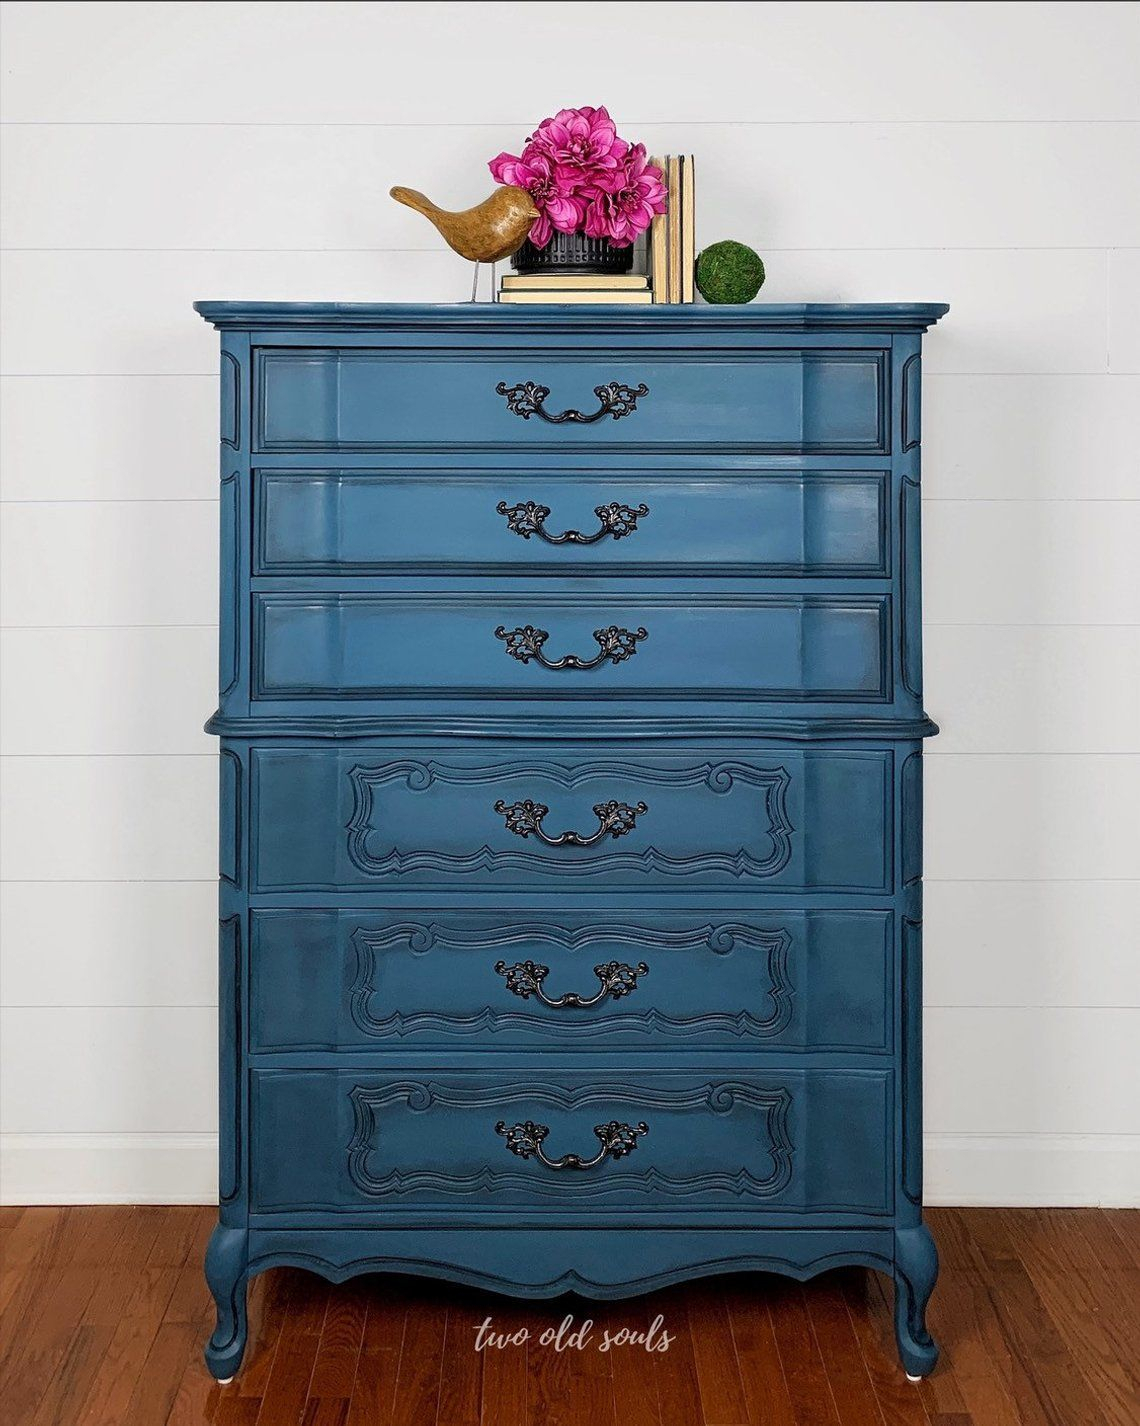 1960S French Provincial Bassett Painted Blue Oversized Pertaining To Pink And Navy Peaks Credenzas (Gallery 24 of 30)